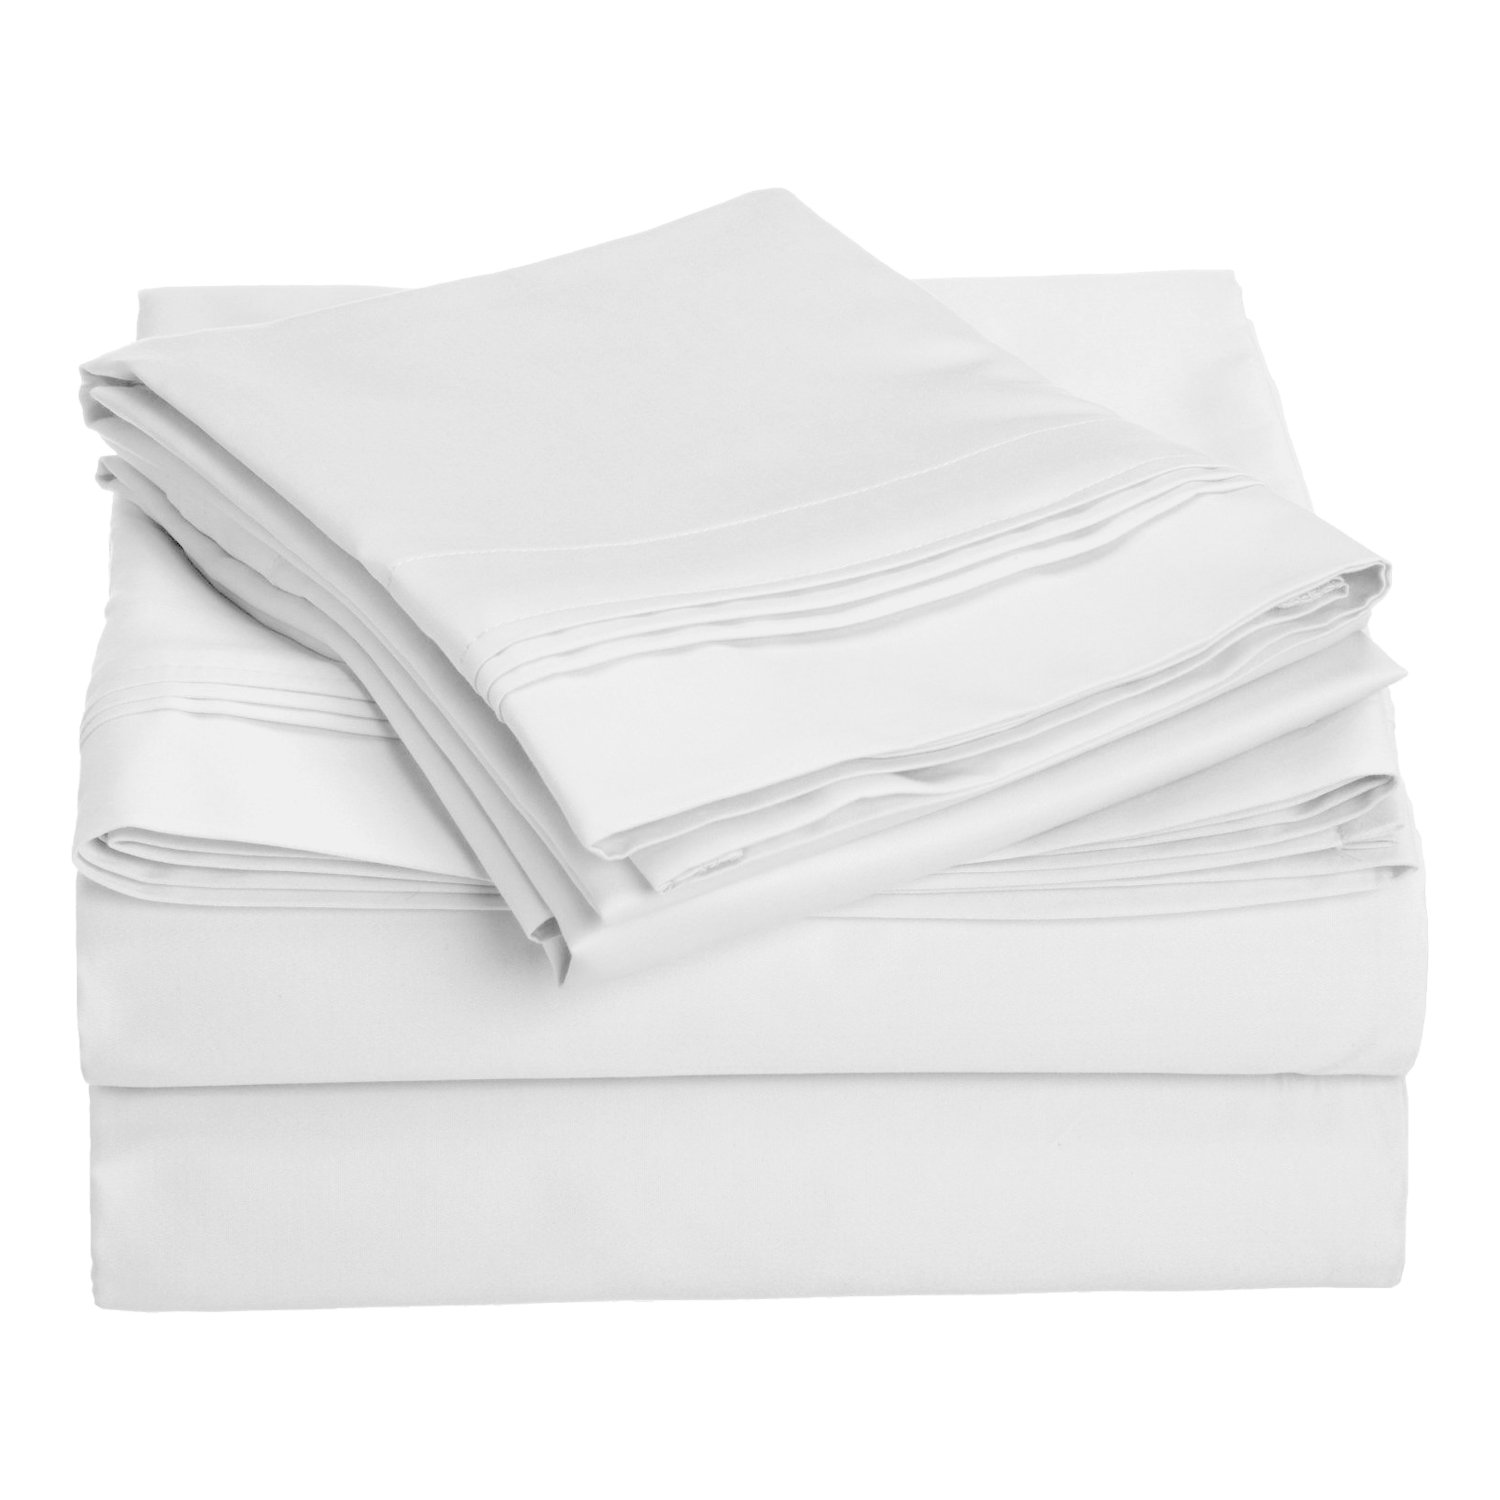 1500 Thread Count 100% Egyptian Cotton, Single Ply, California King Bed Sheet Set, Solid, White